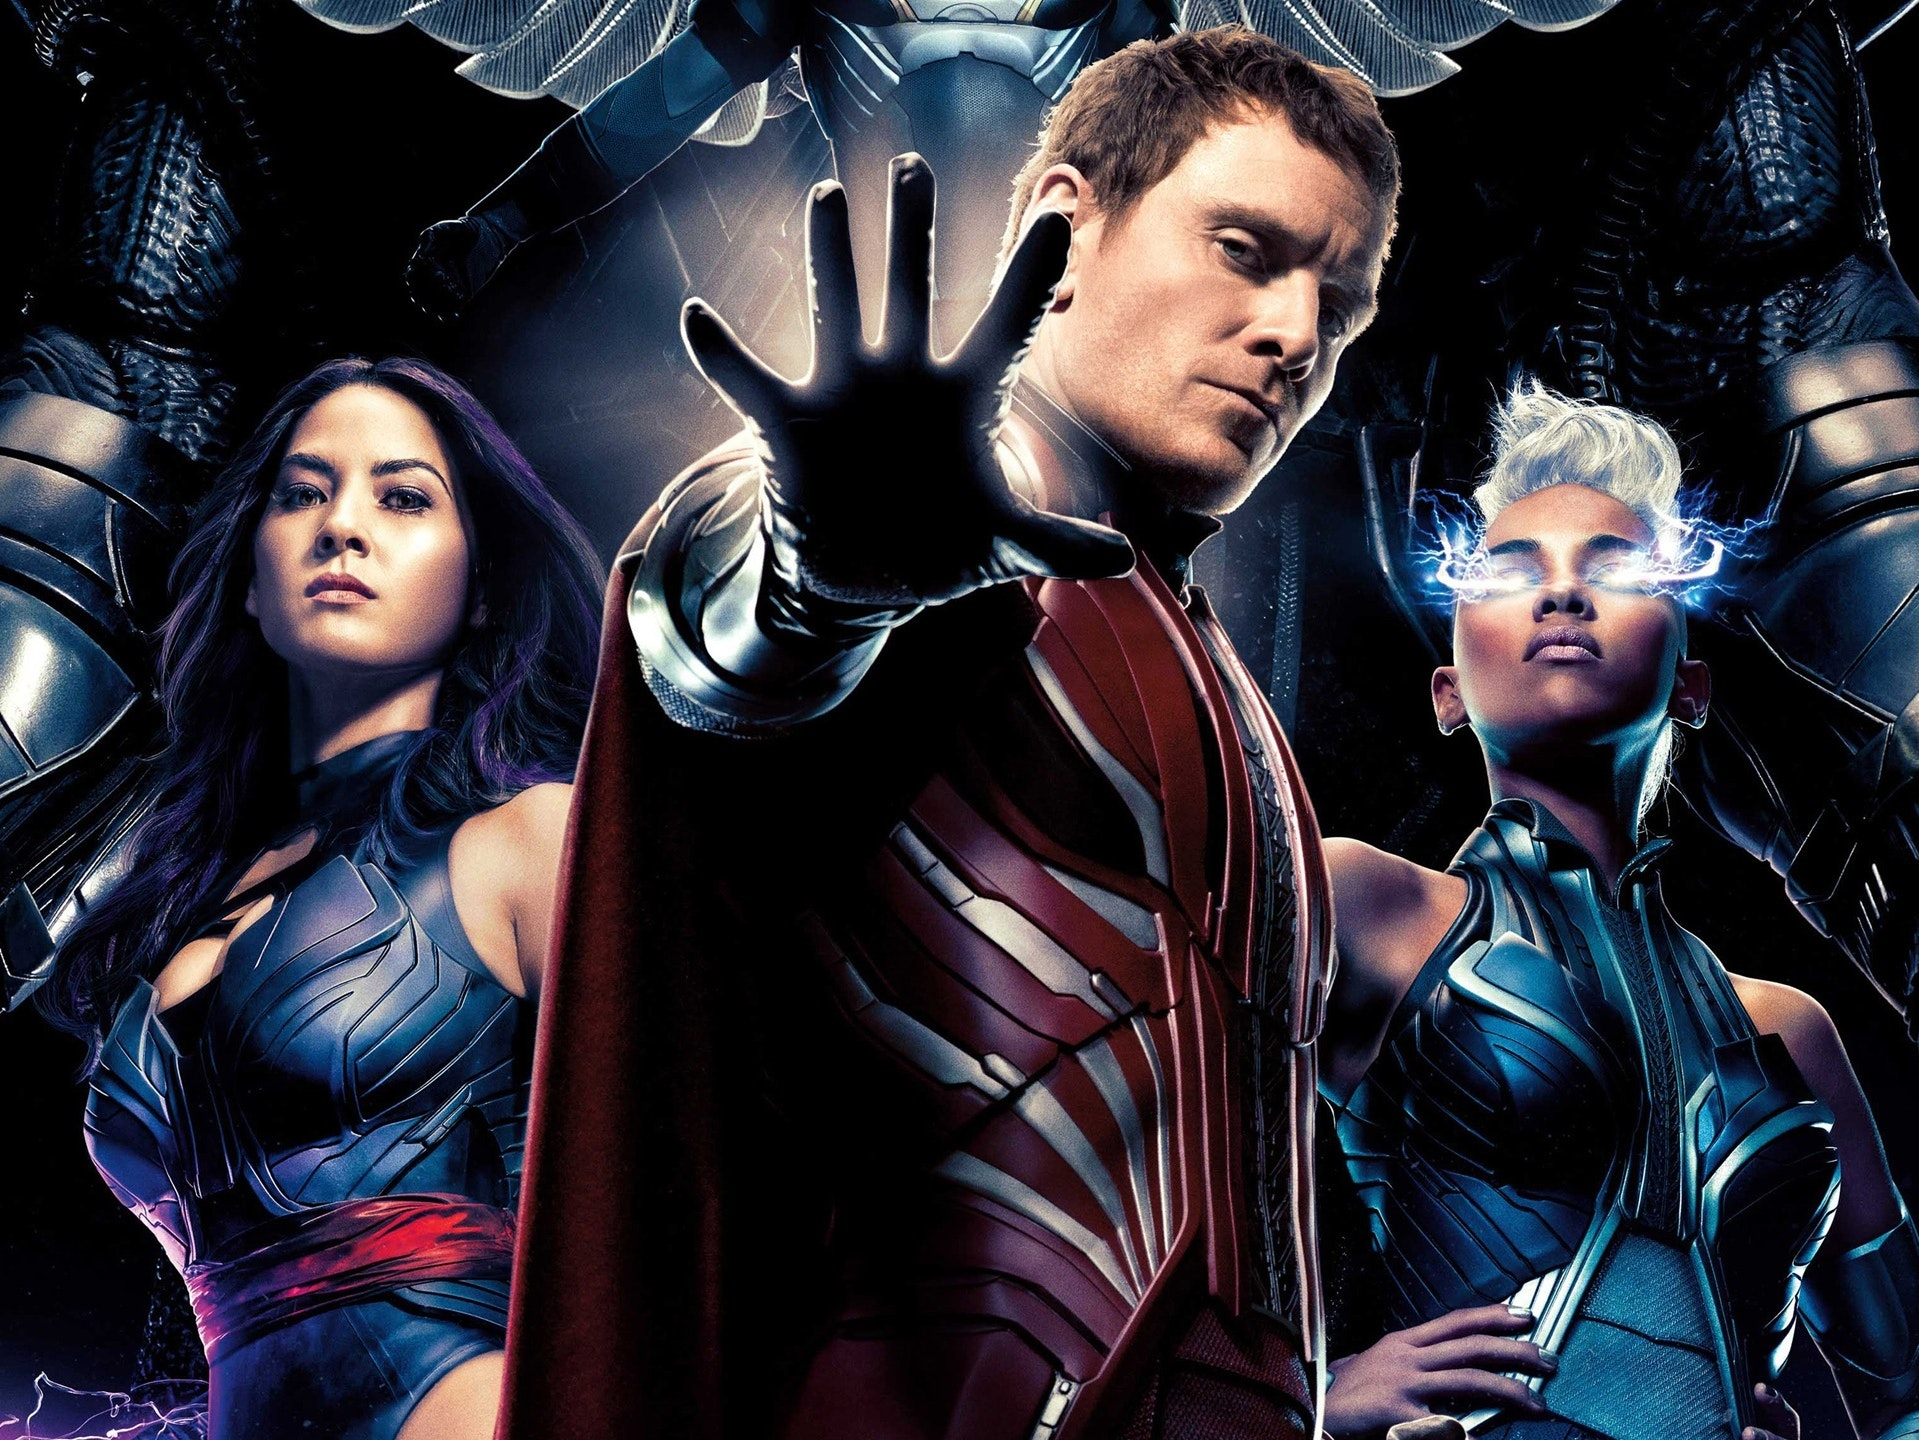 Why the X-Men Will Survive the Coming Superhero Movie Apocalypse